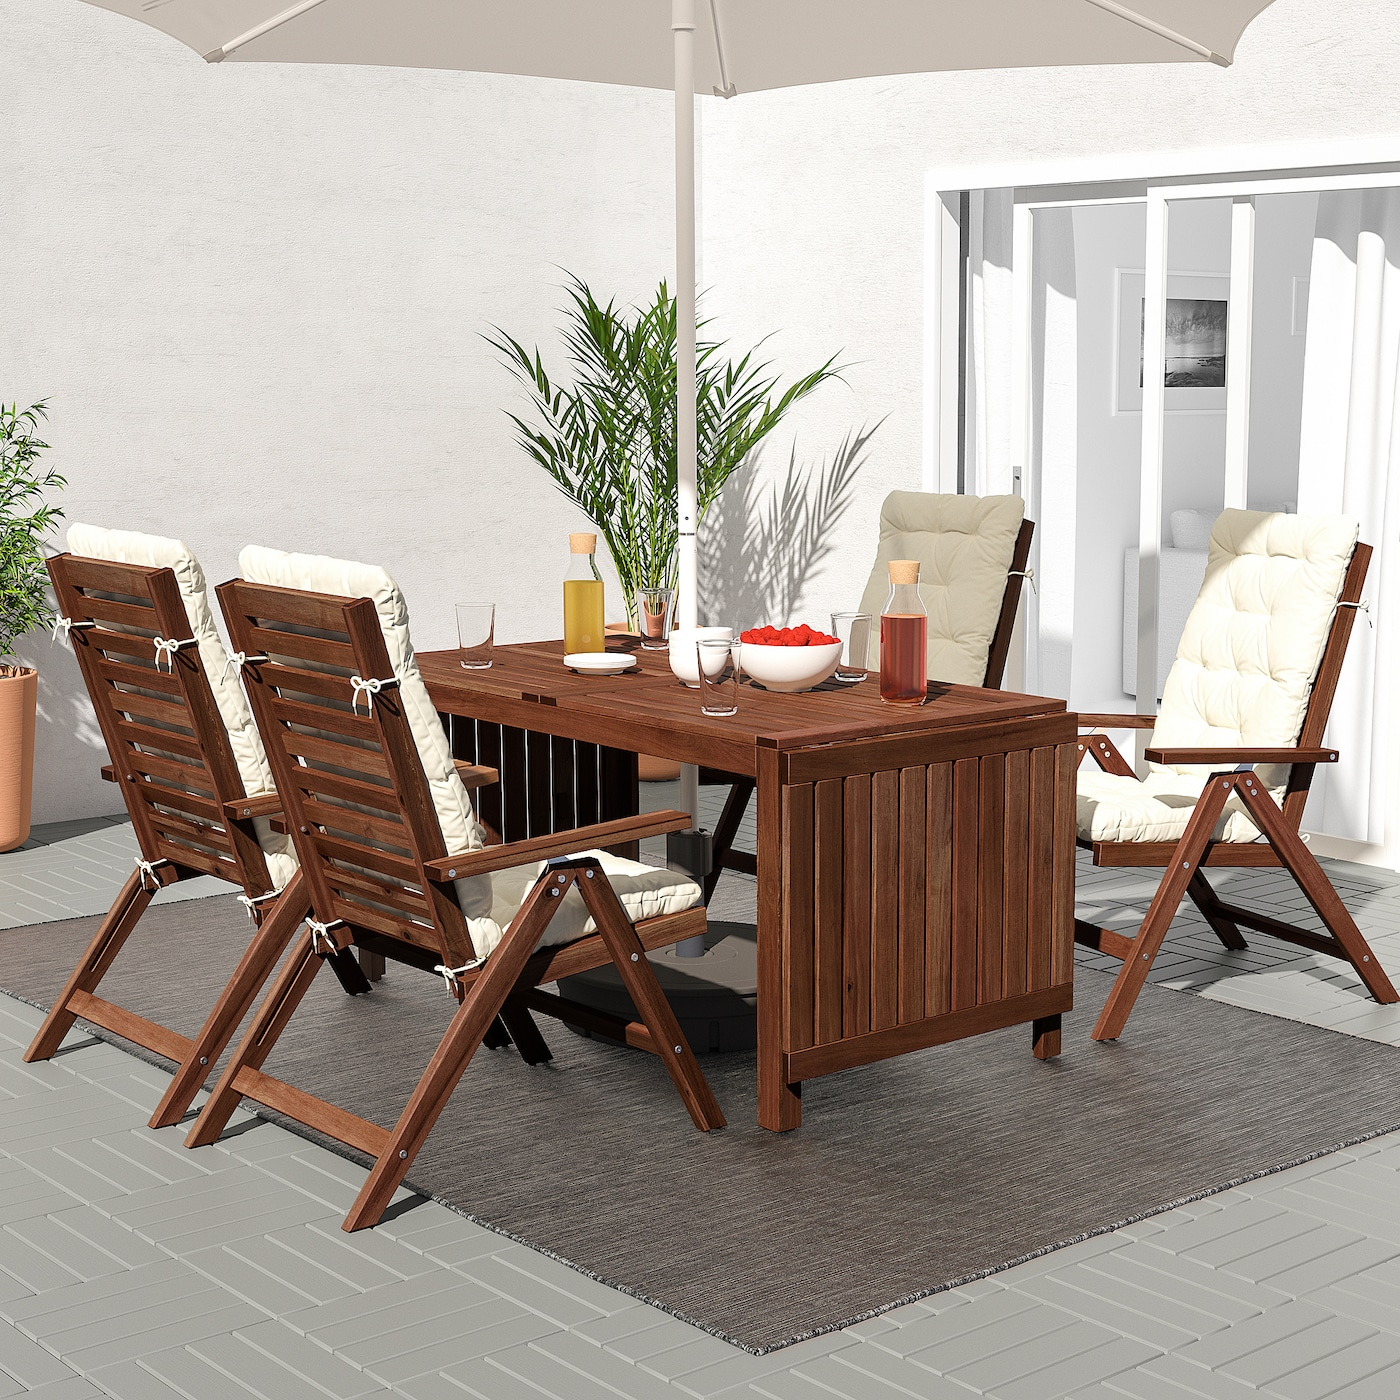 ÄPPLARÖ Reclining chair, outdoor - foldable brown stained